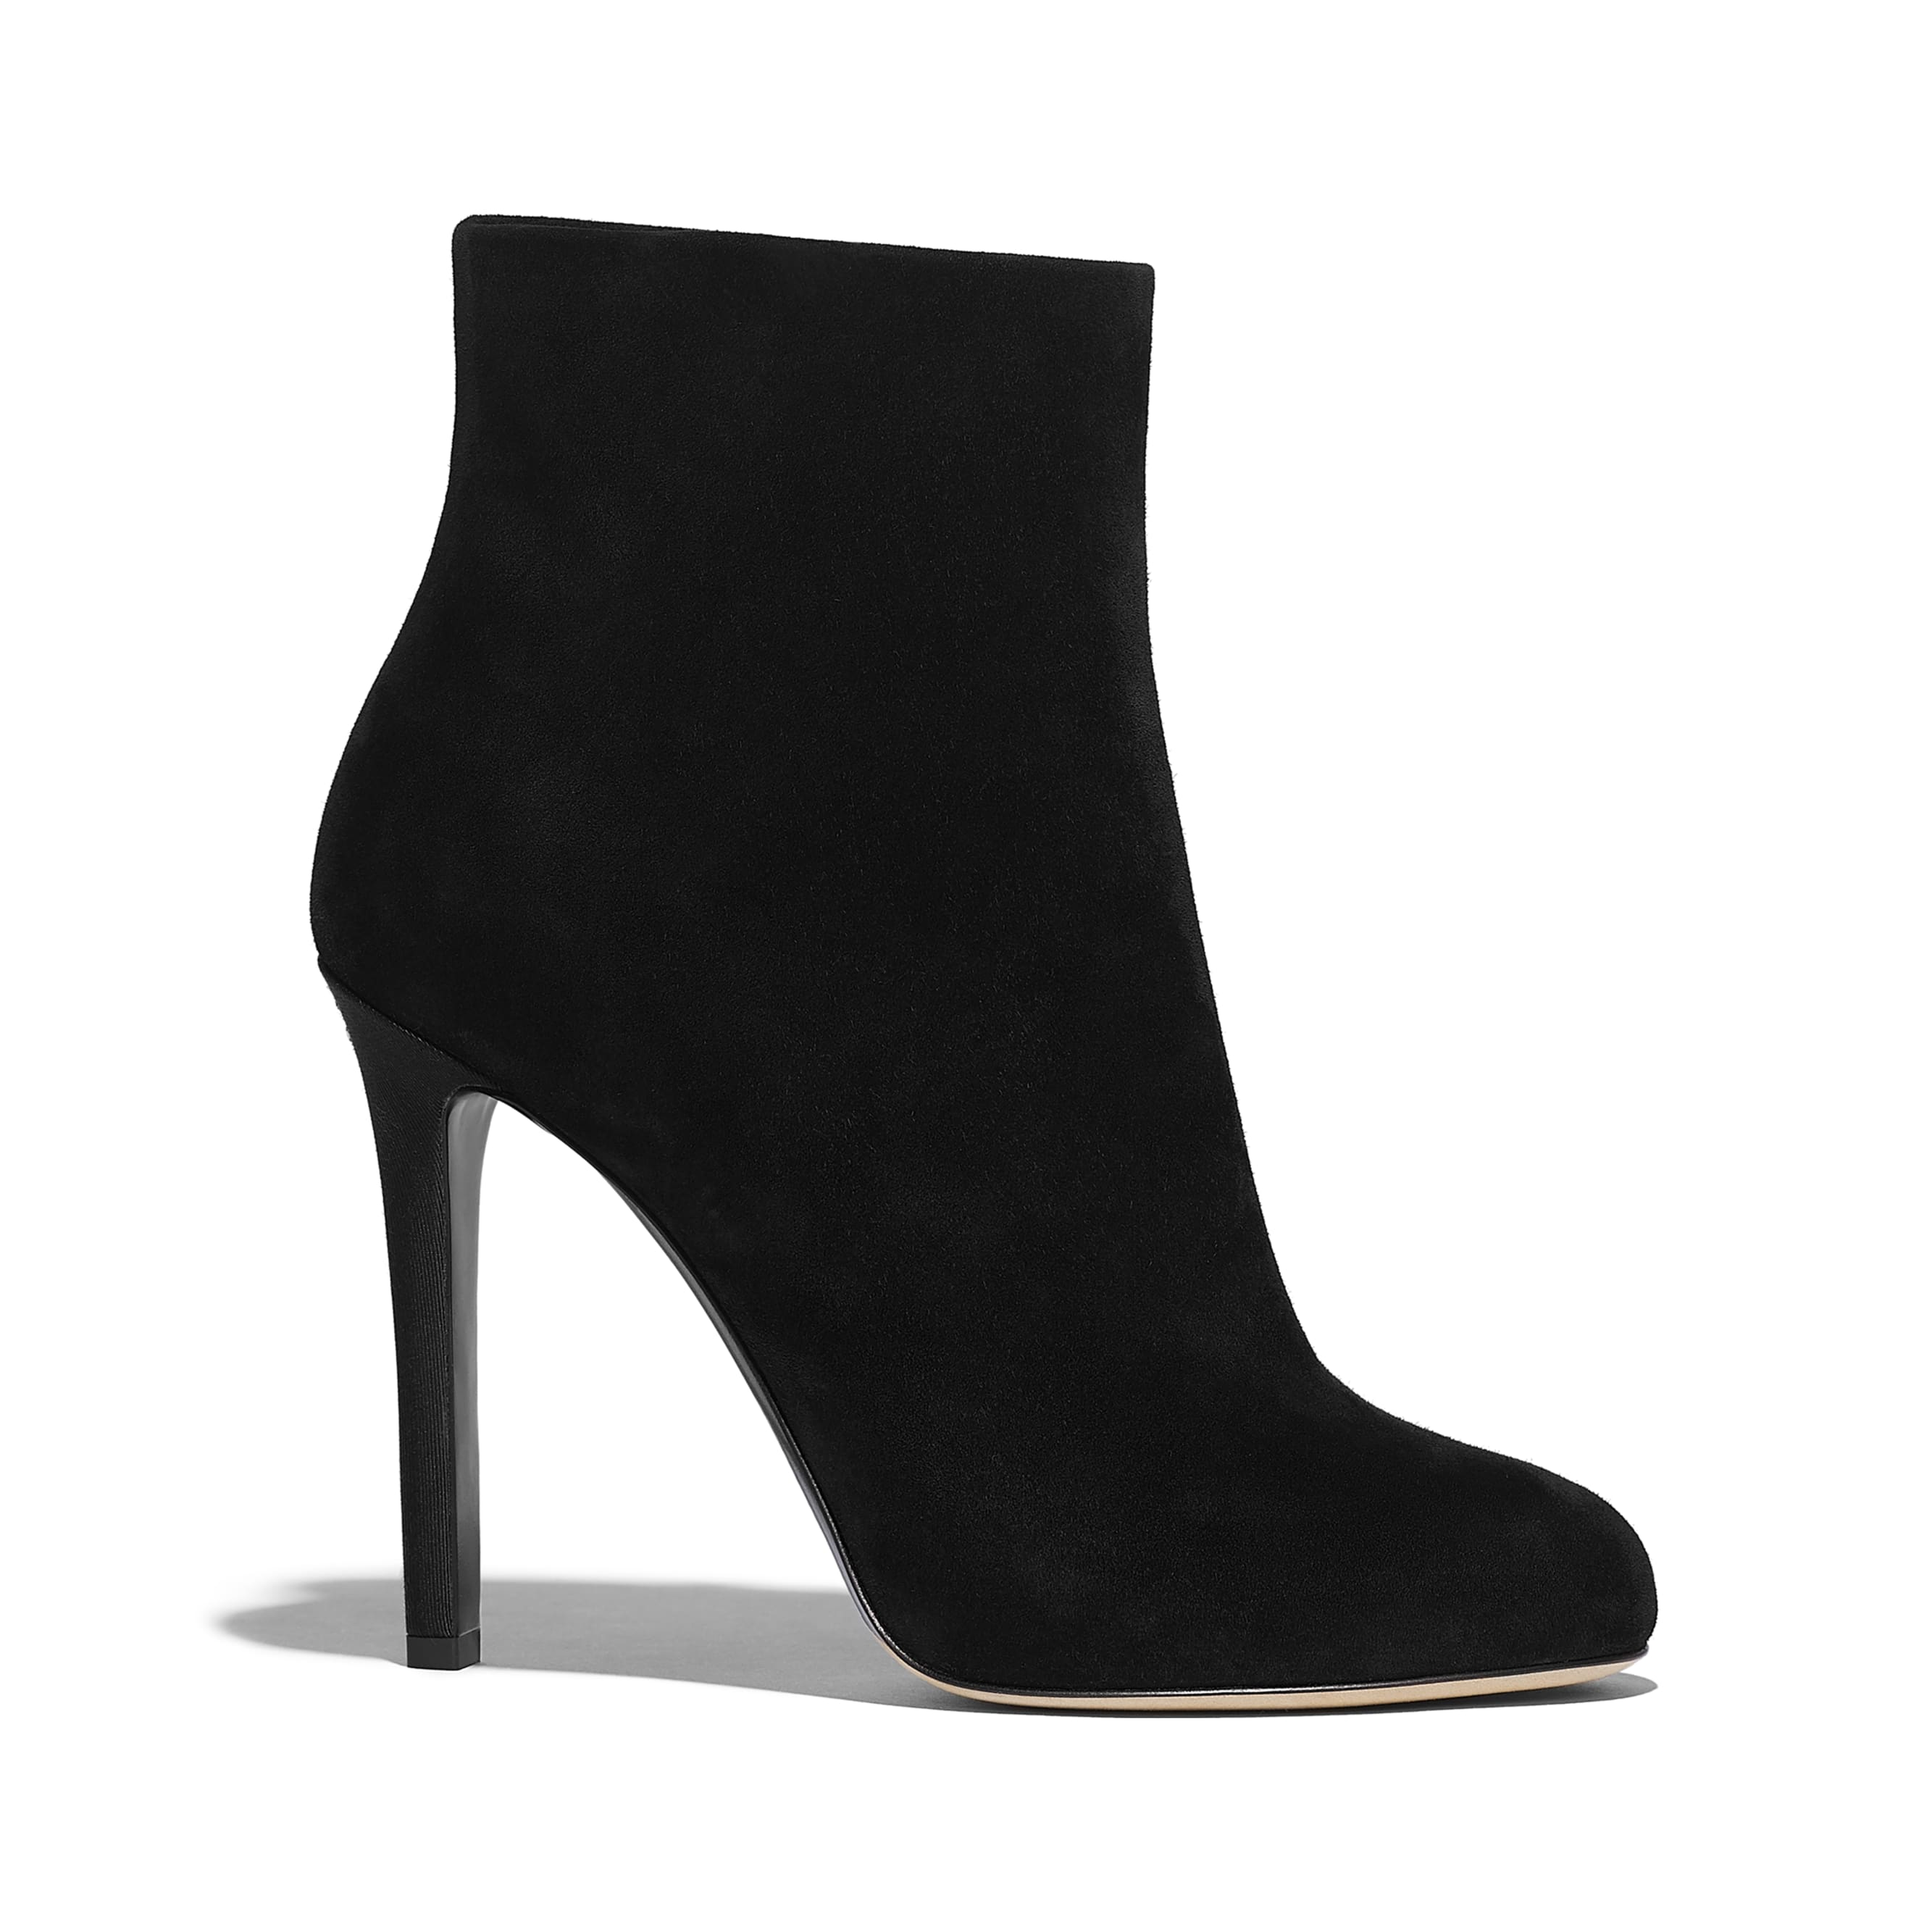 Ankle Boots - Black - Suede Calfskin - Default view - see standard sized version